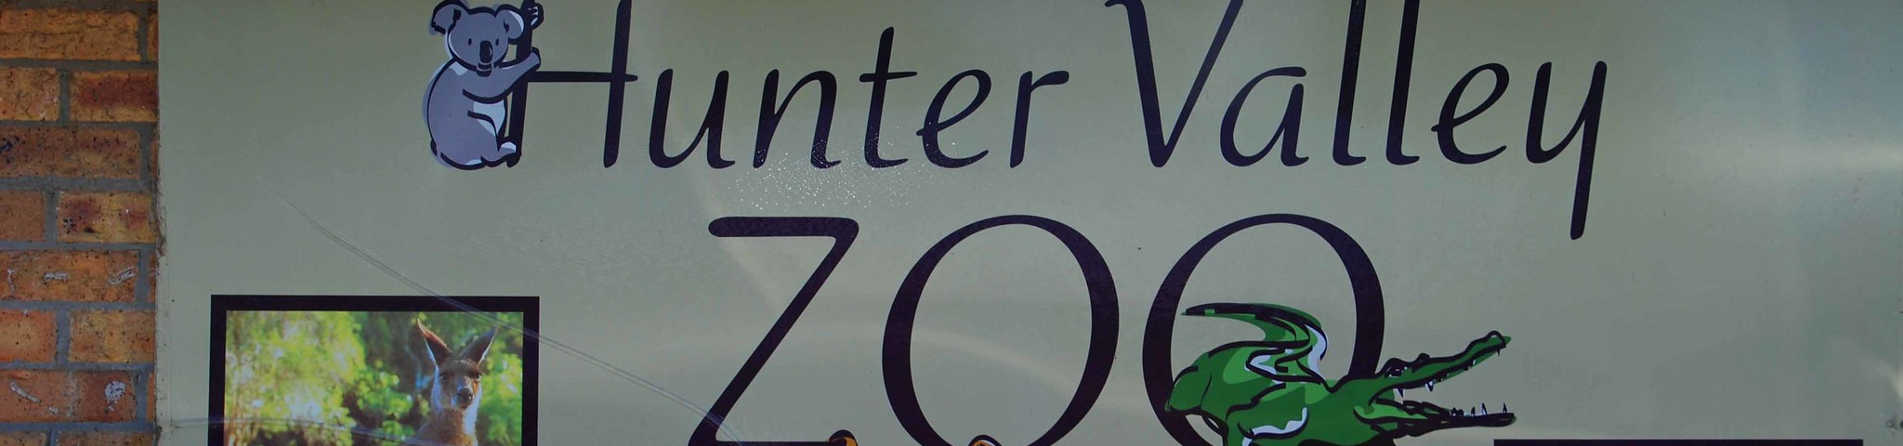 Enjoy the Hunter Valley Zoo